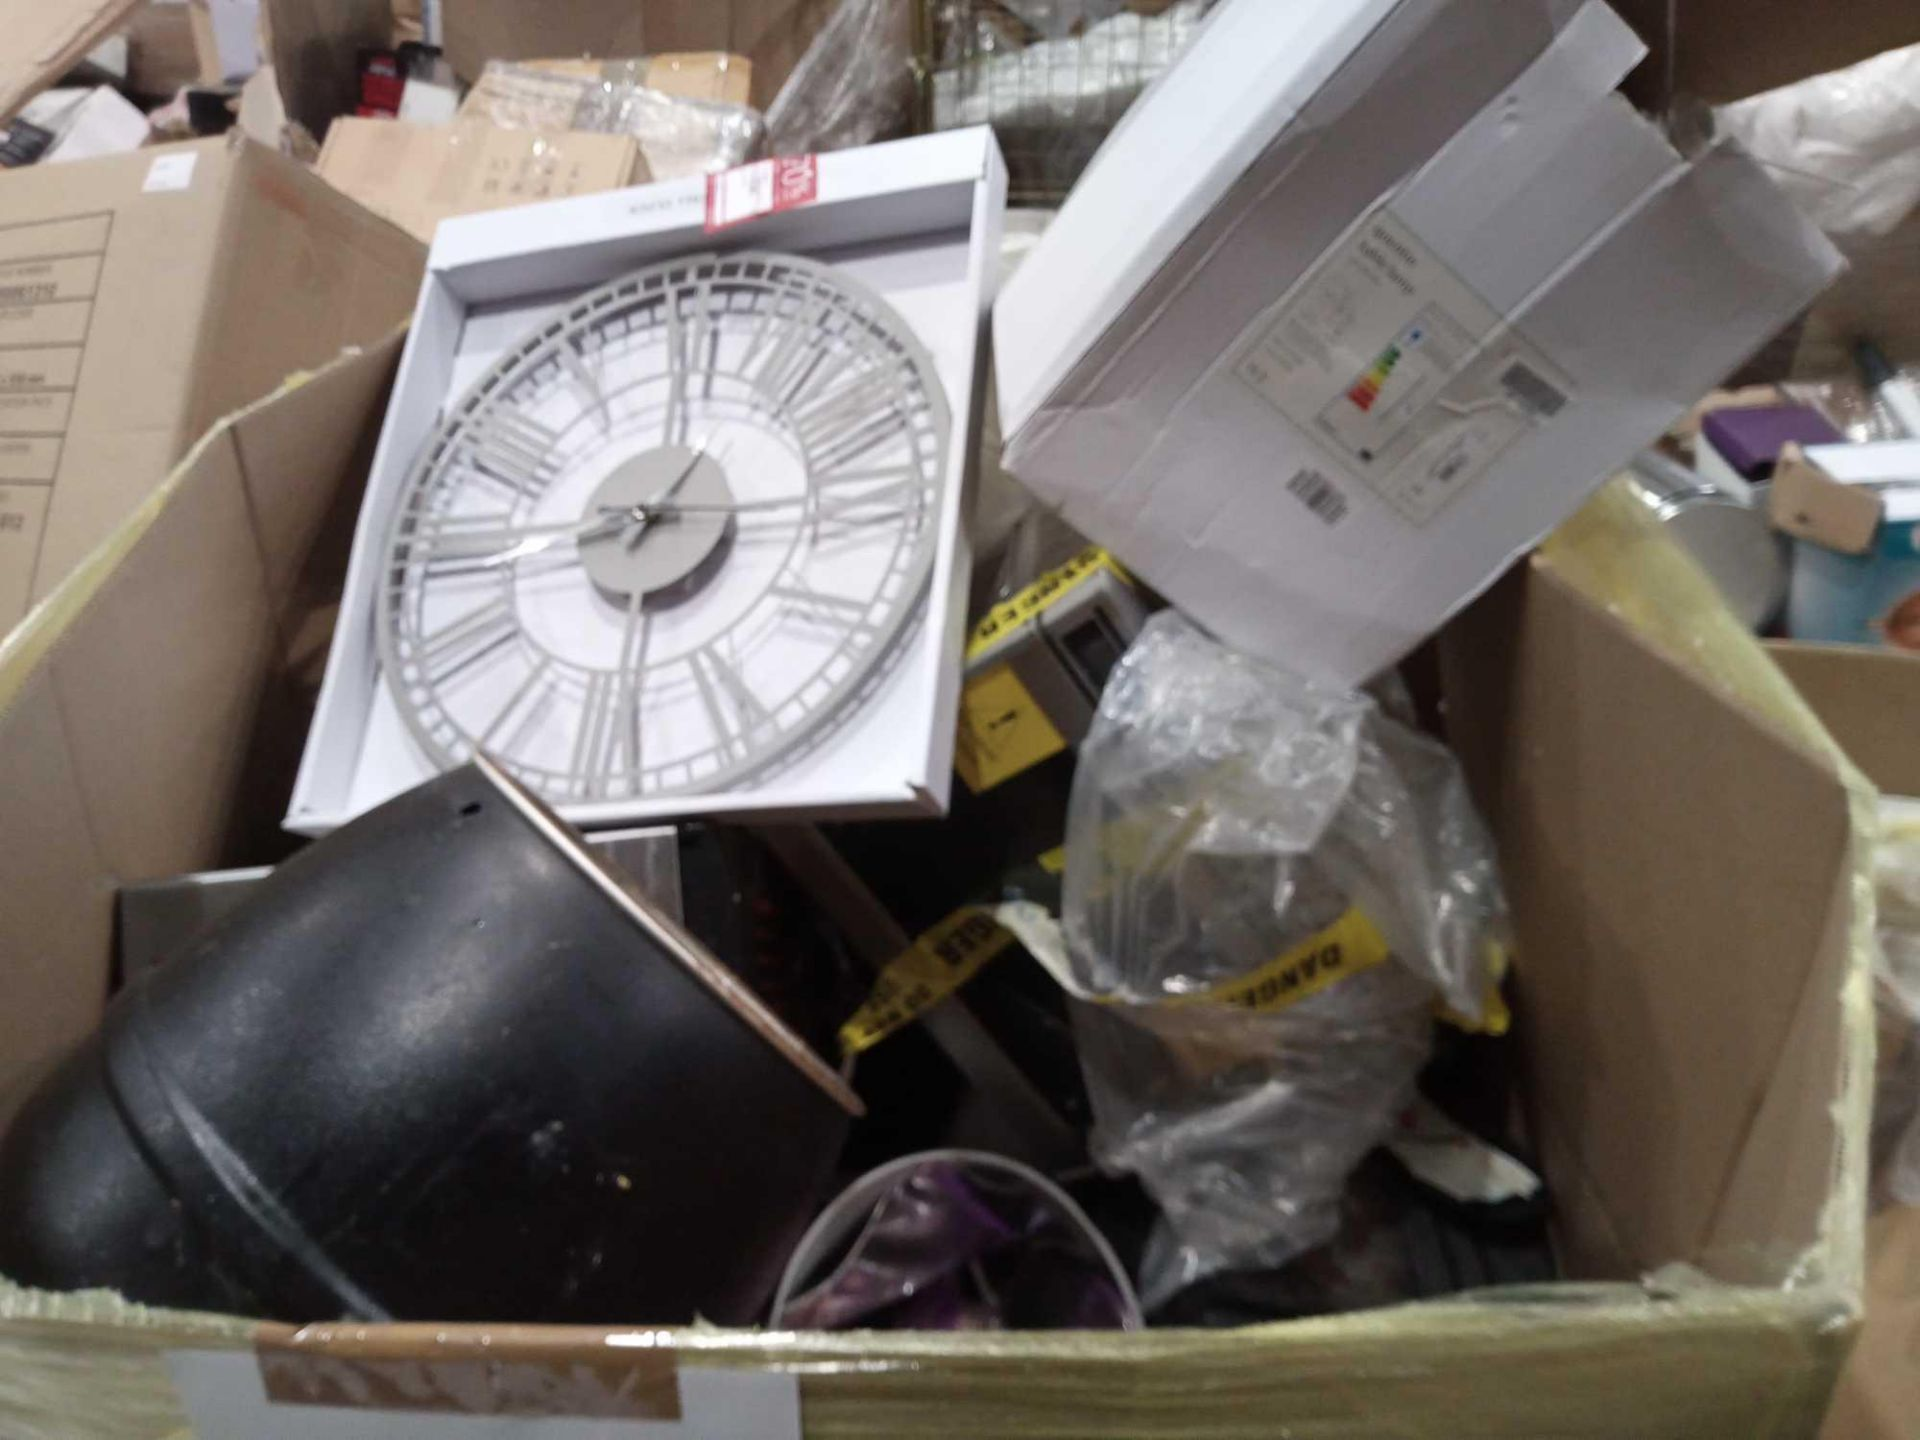 Pallet To Contain Mixed Stock To Include Microwaves Toasters, Hoovers, Unboxed And Boxed Lighting, W - Image 3 of 3